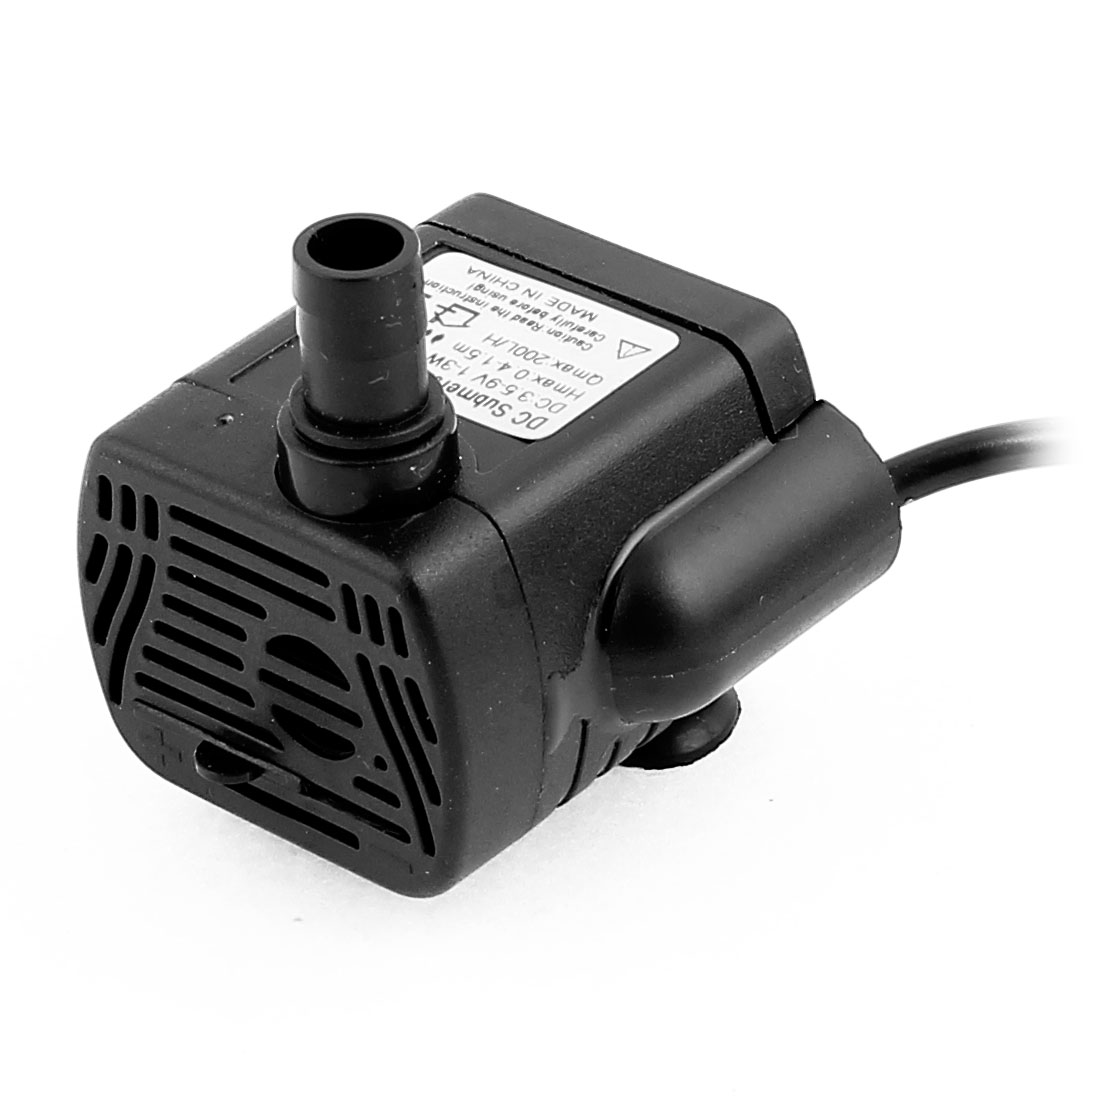 DC 3.5V-9V 1-3W USB Mini Submersible Pump for Aquarium Fish Tank Fountain Pond